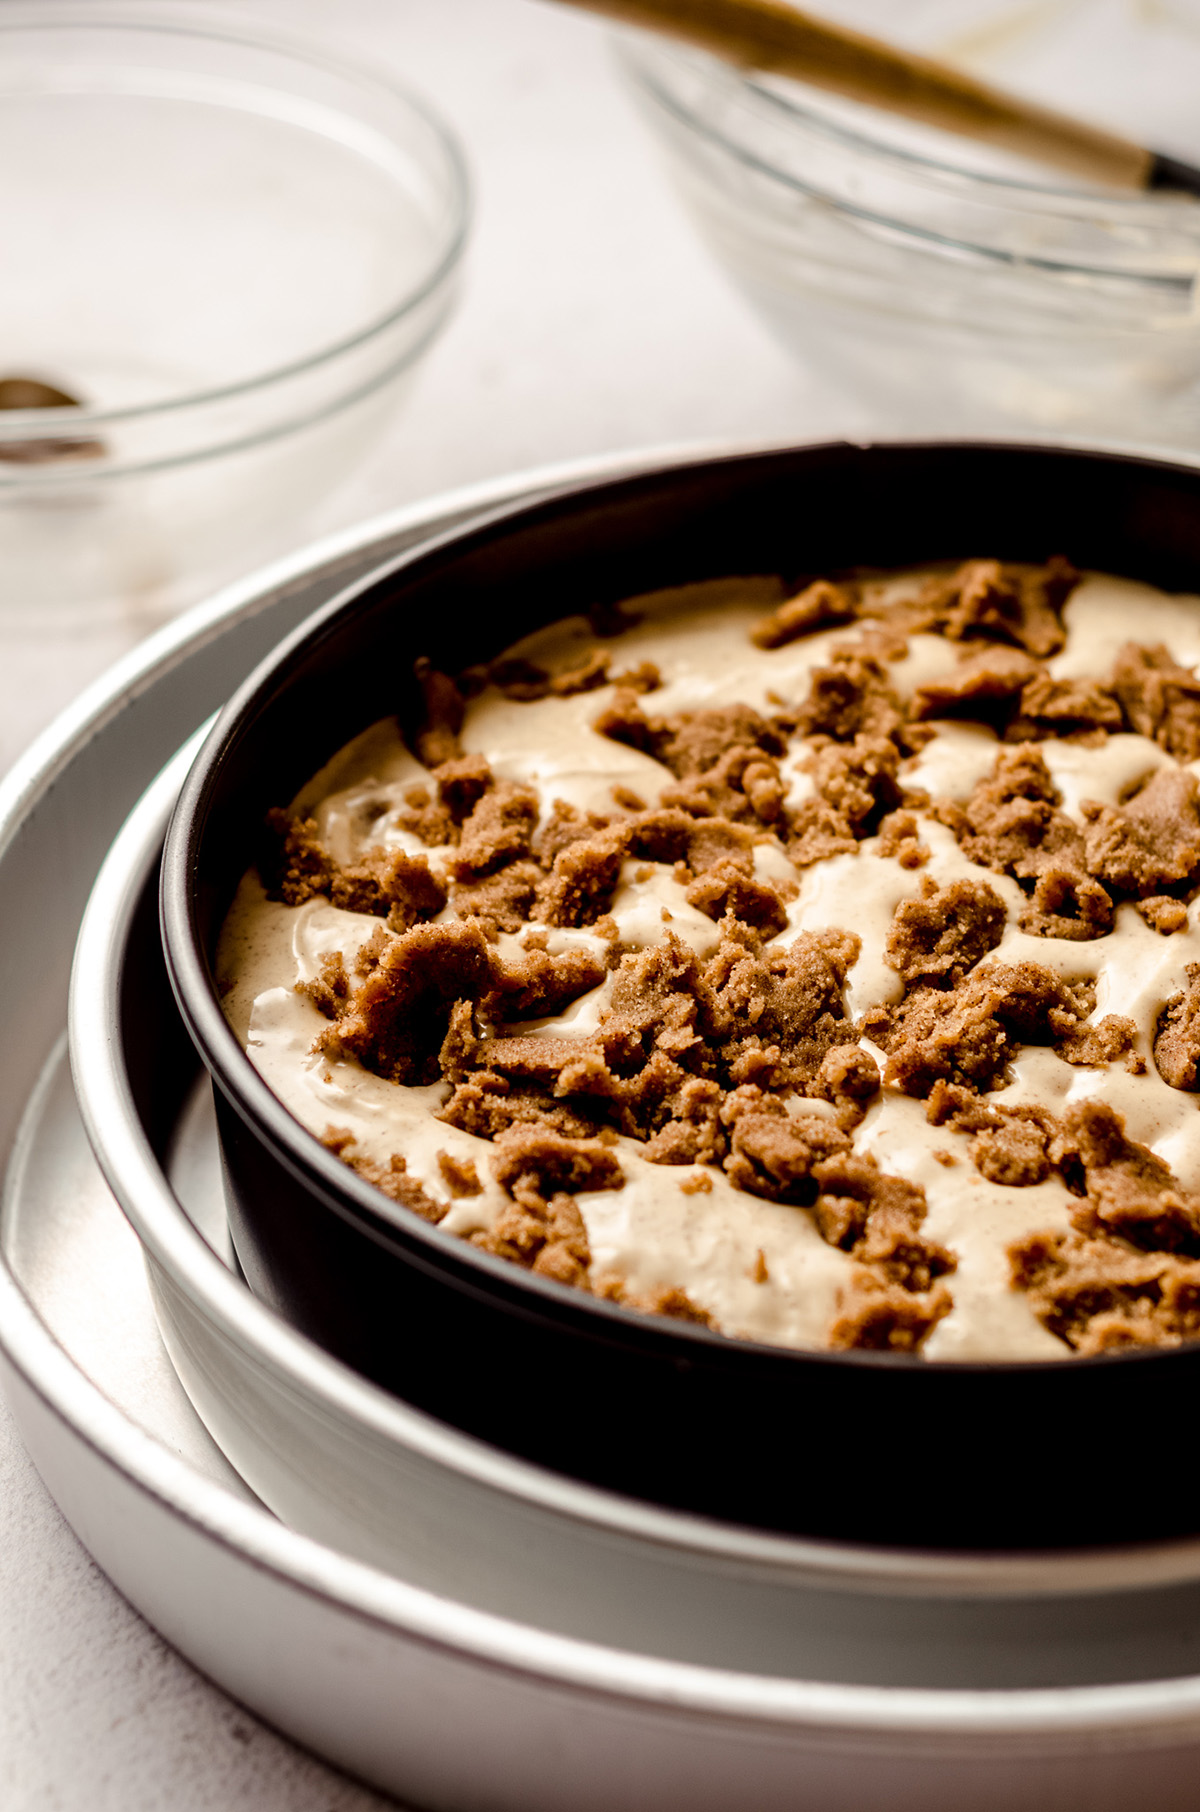 cinnamon roll cheesecake batter with chunks of cinnamon roll filling ready to bake